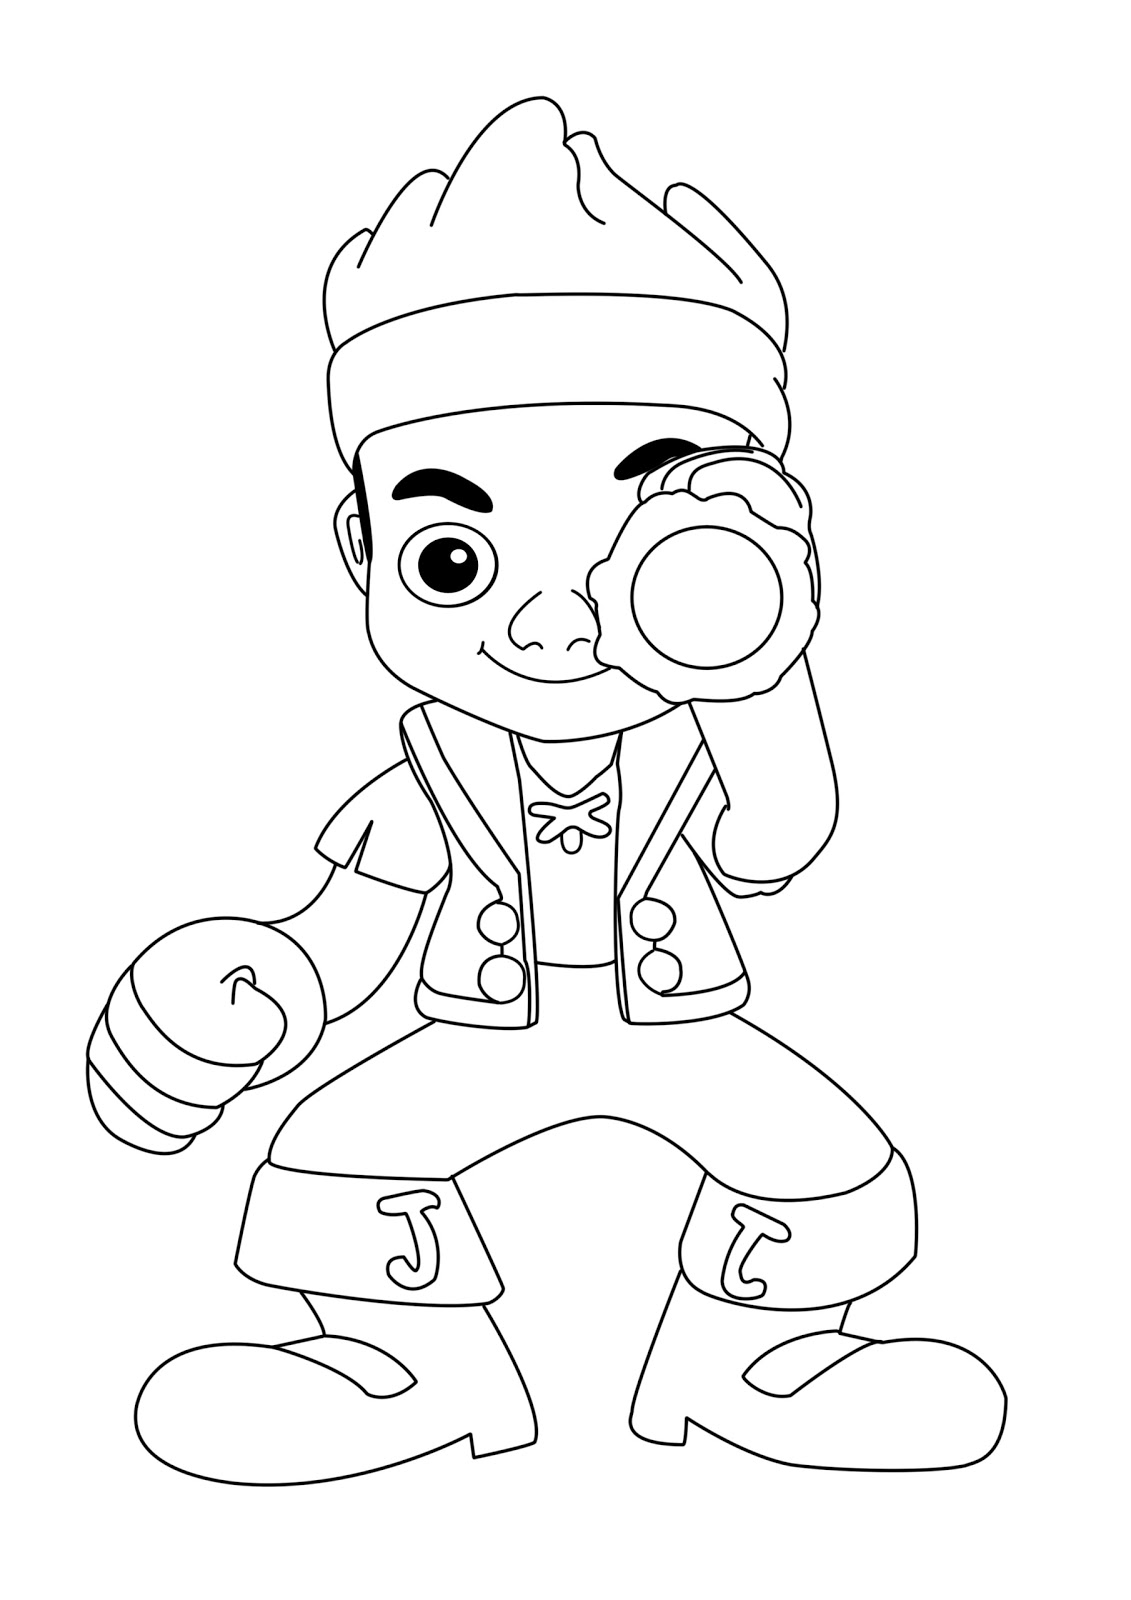 jake coloring pages jake long coloring page jake pages coloring